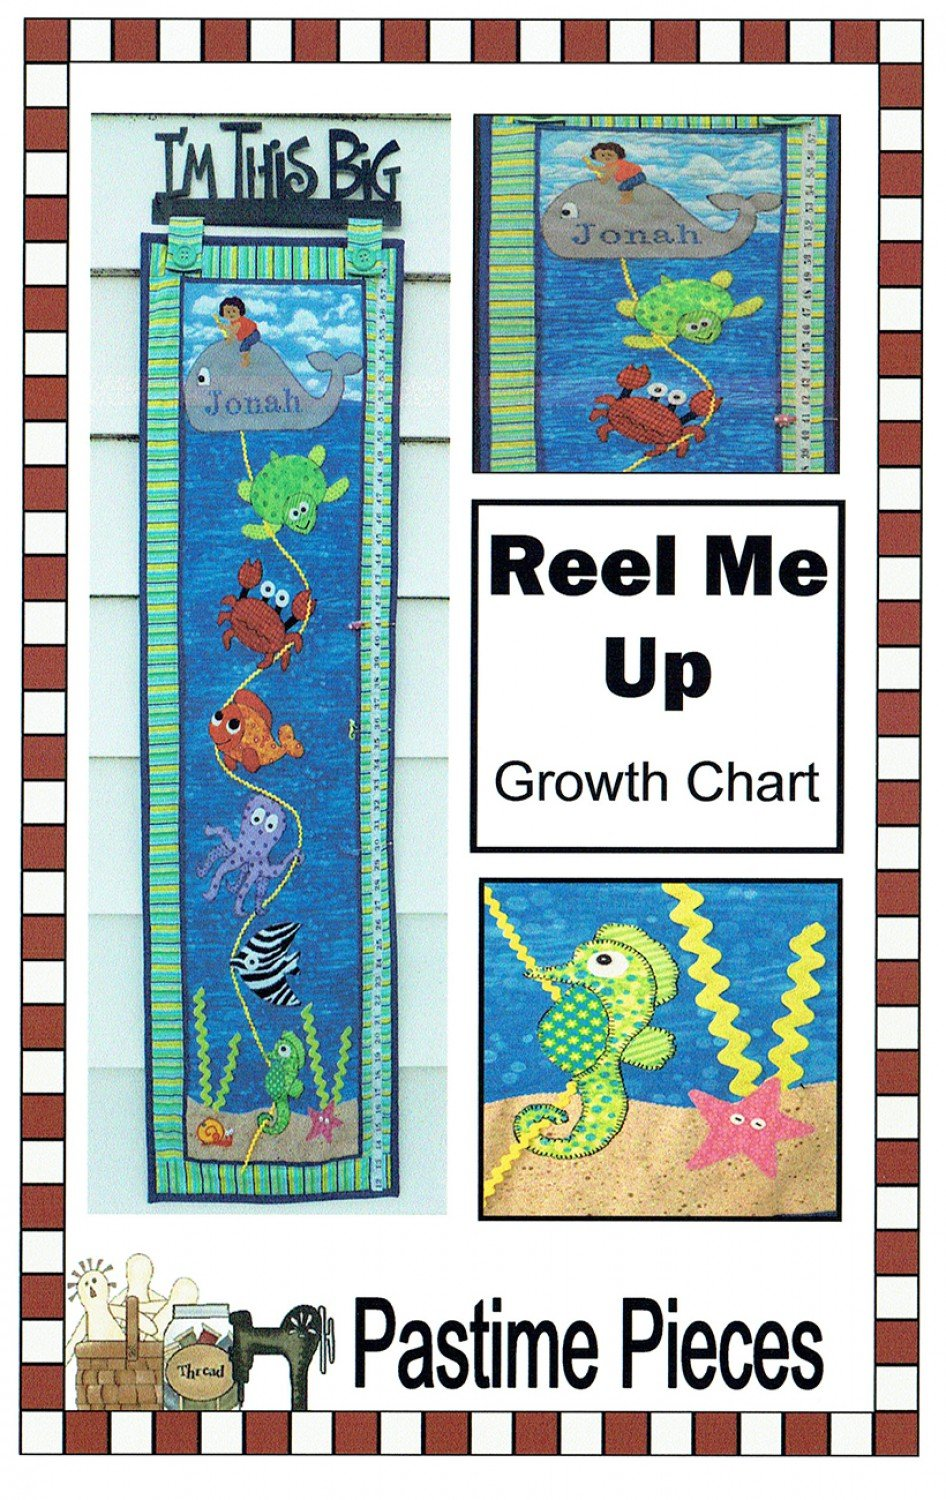 Reel Me Up Growth Chart Pattern